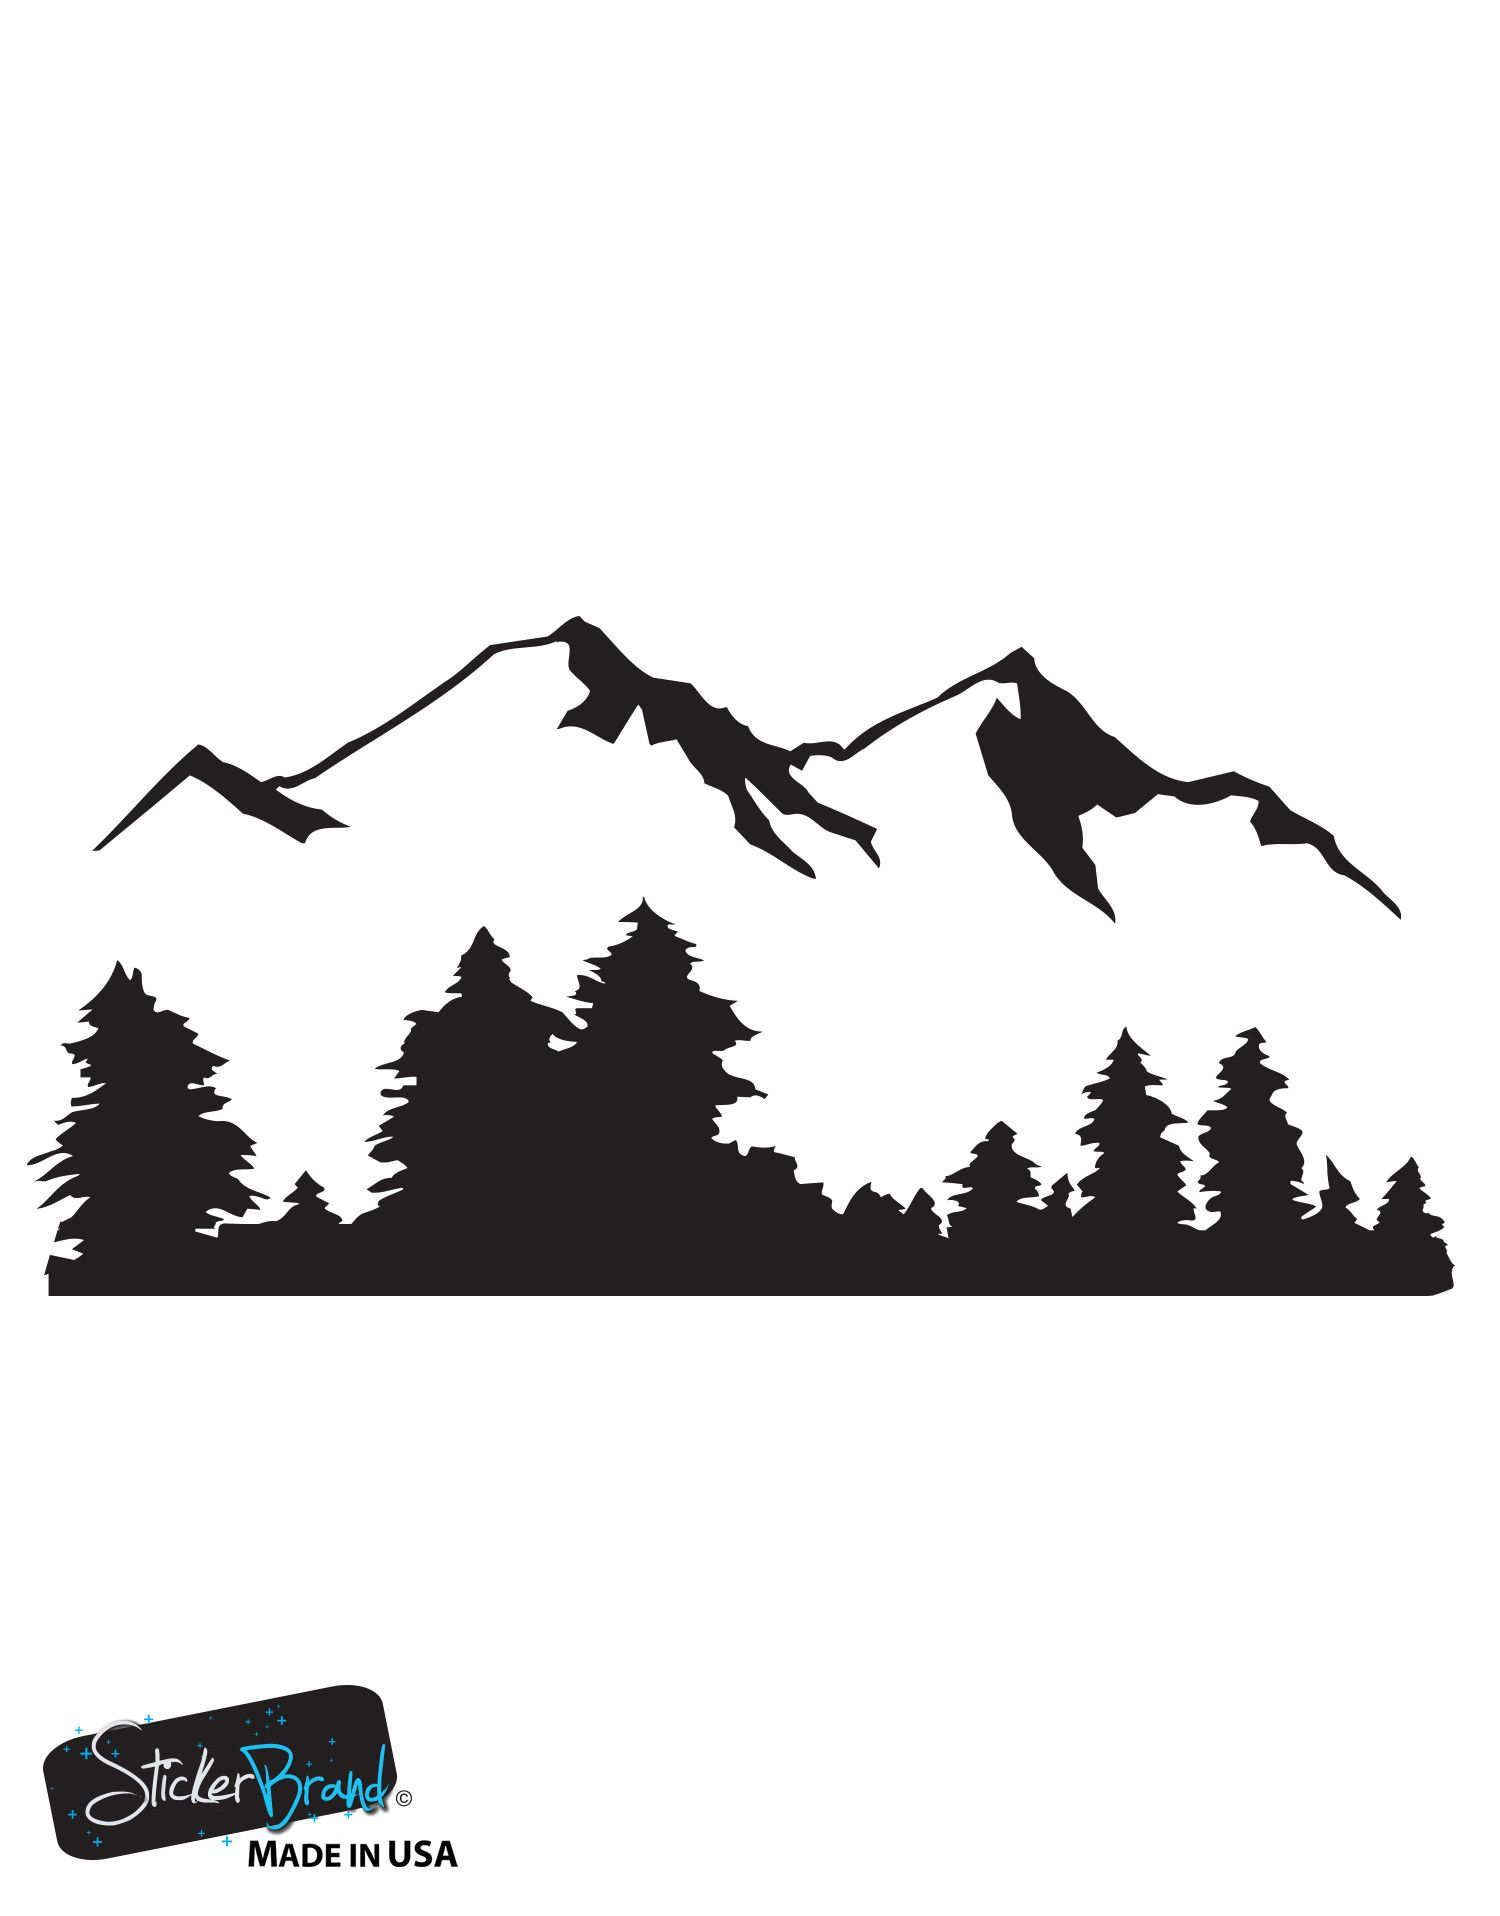 Snow Mountain View Wall Decal Sticker Includes Forest